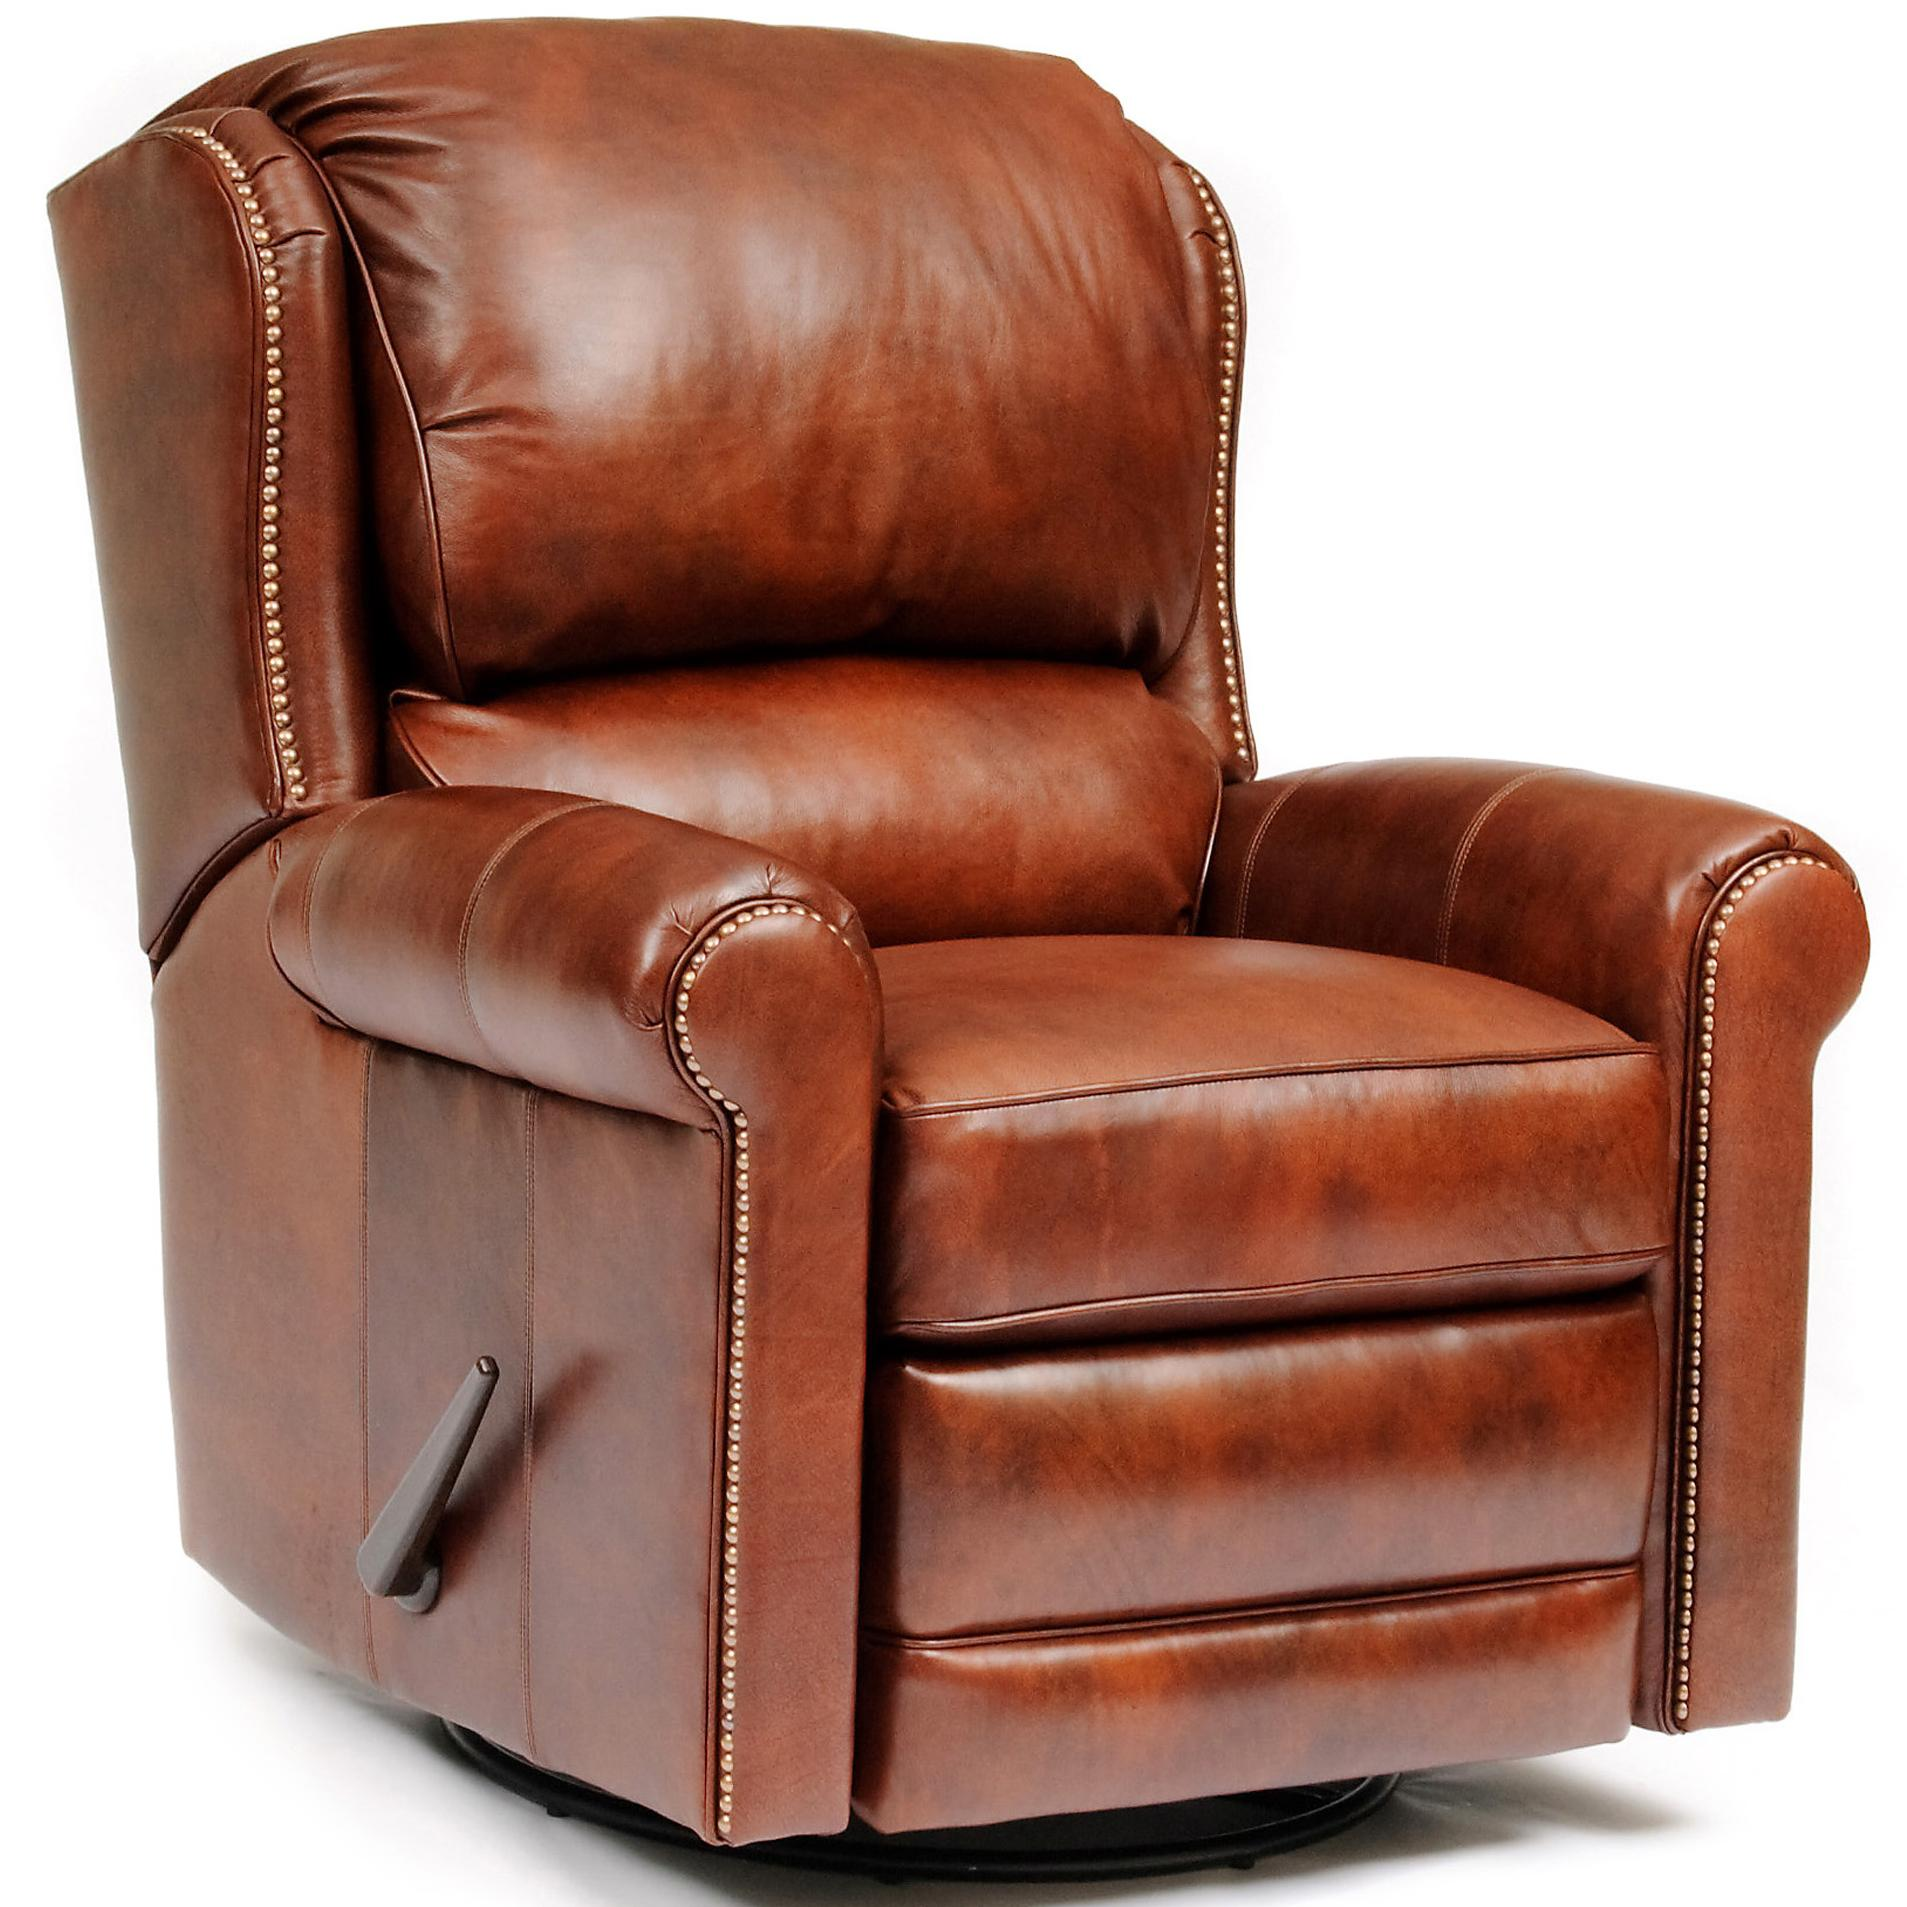 Leather Reclining Chair 720l Casual Leather Motorized Reclining Chair By Smith